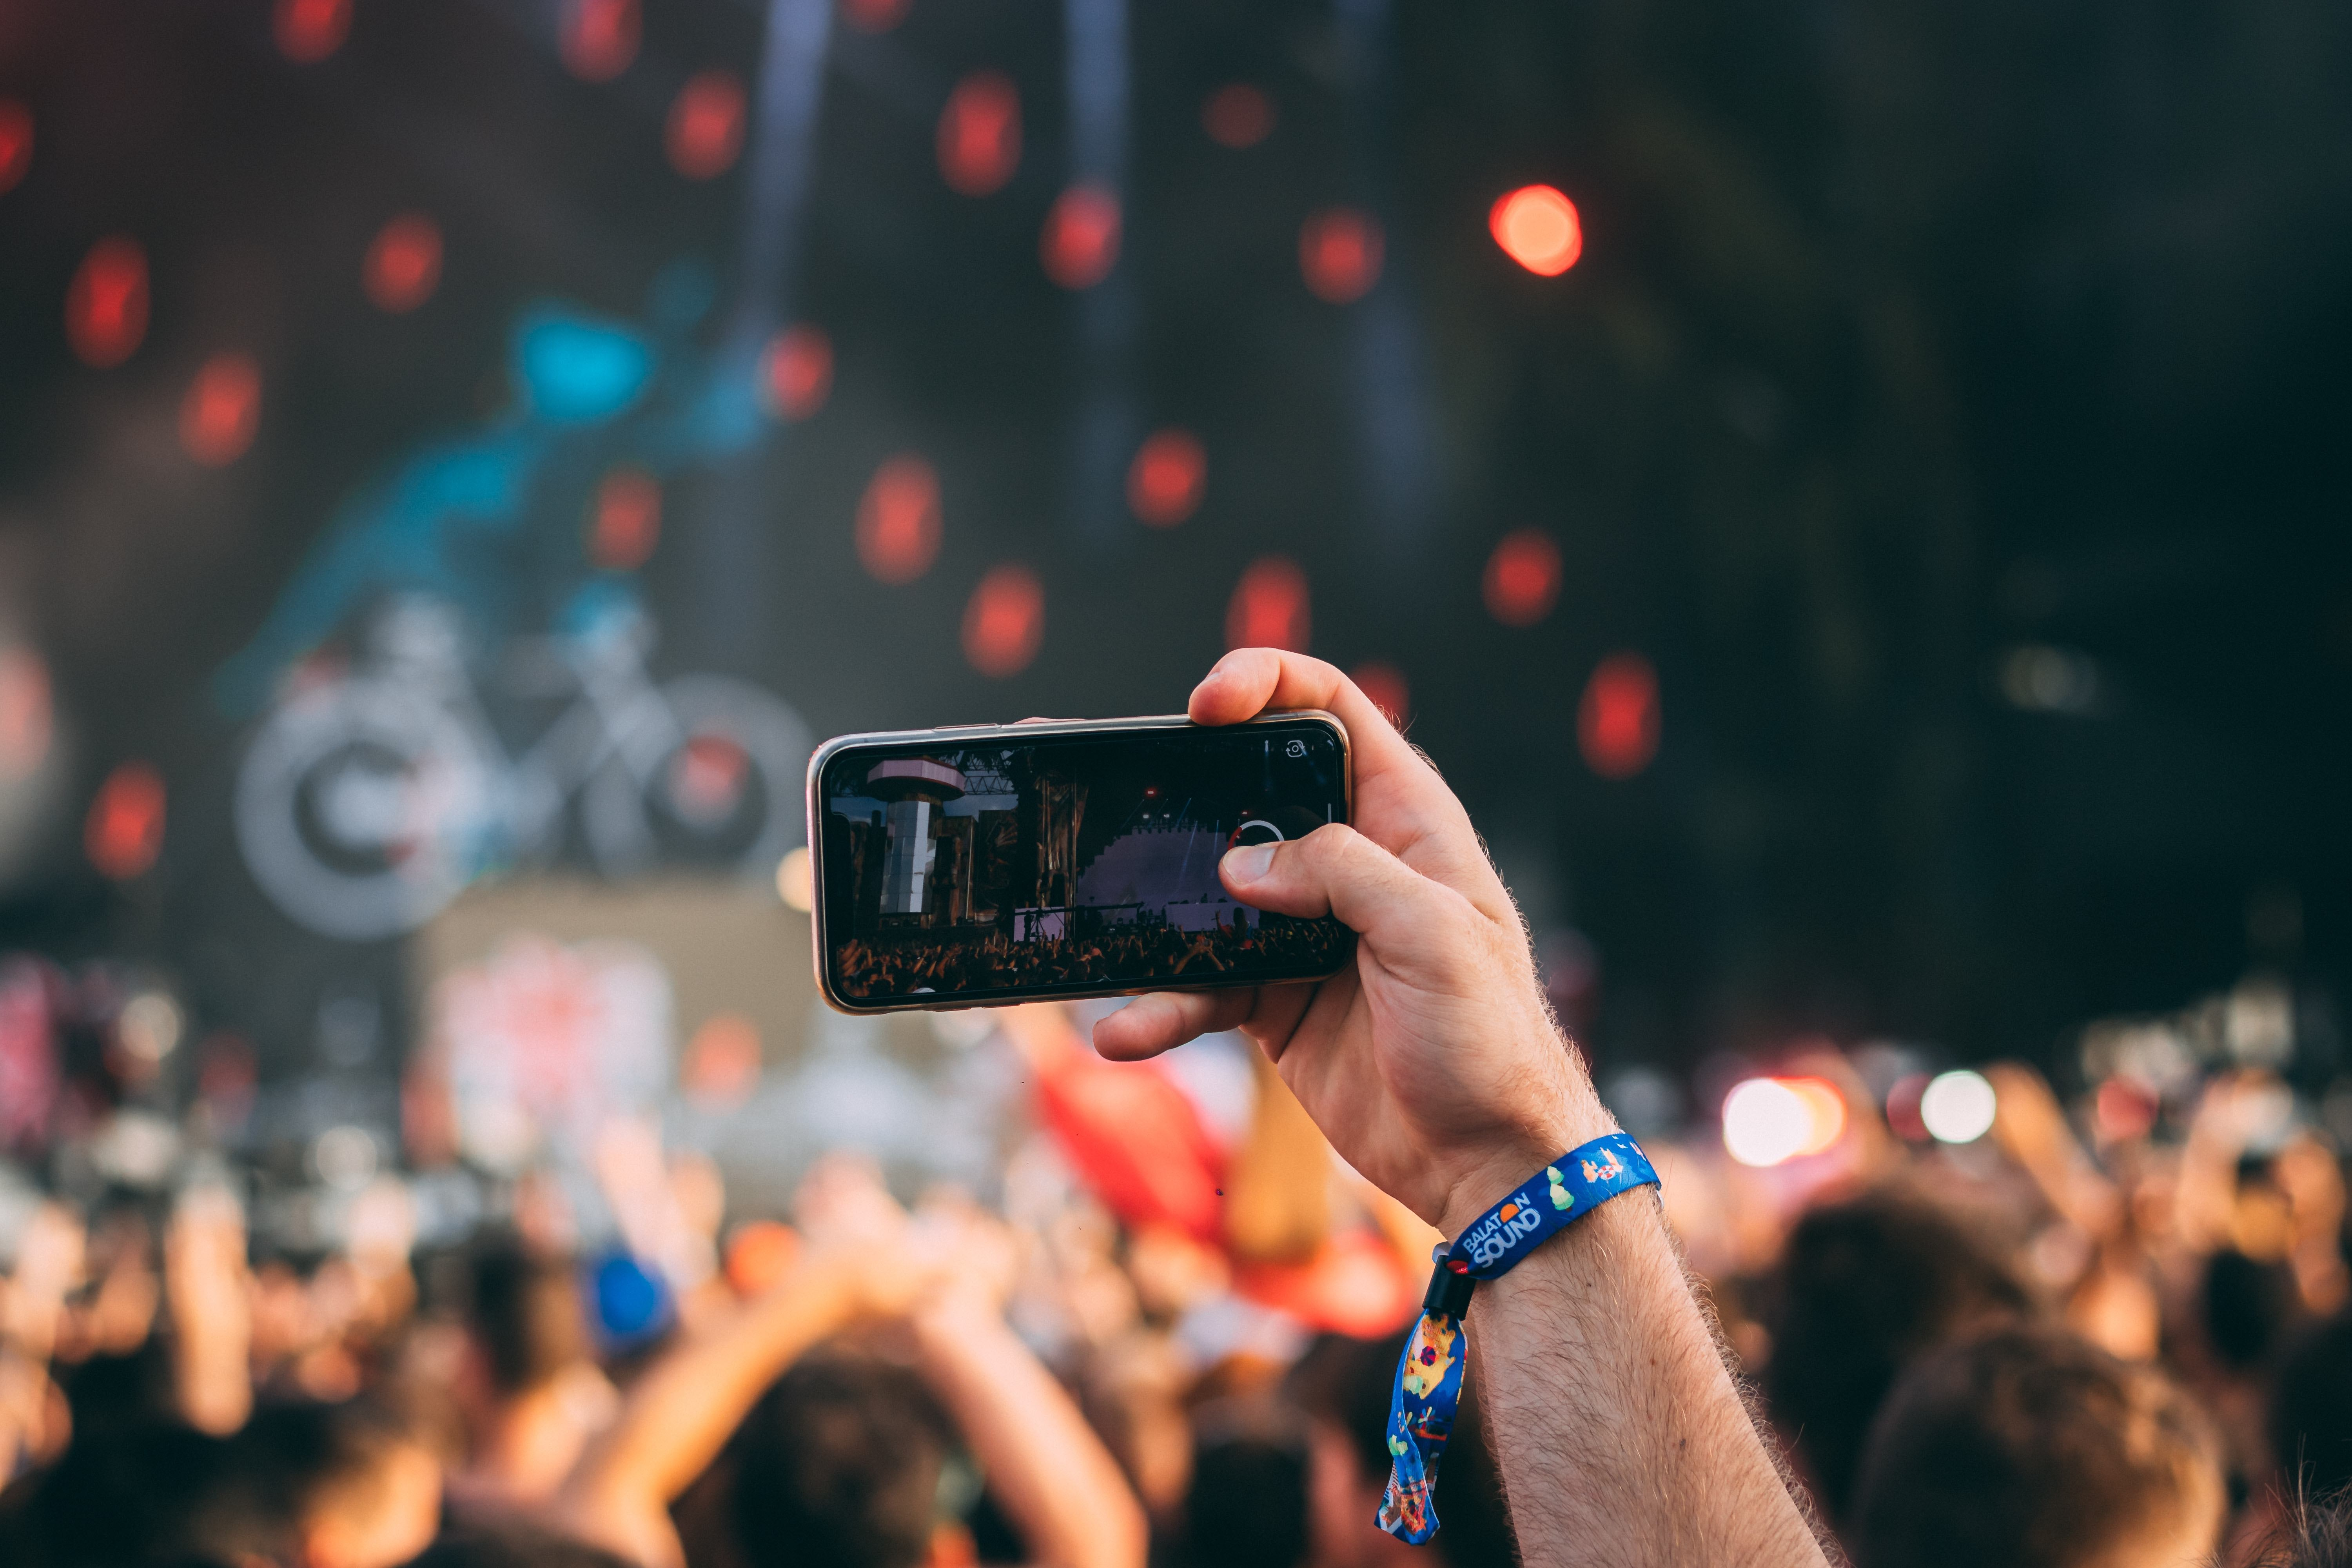 phone in man's hand at festival